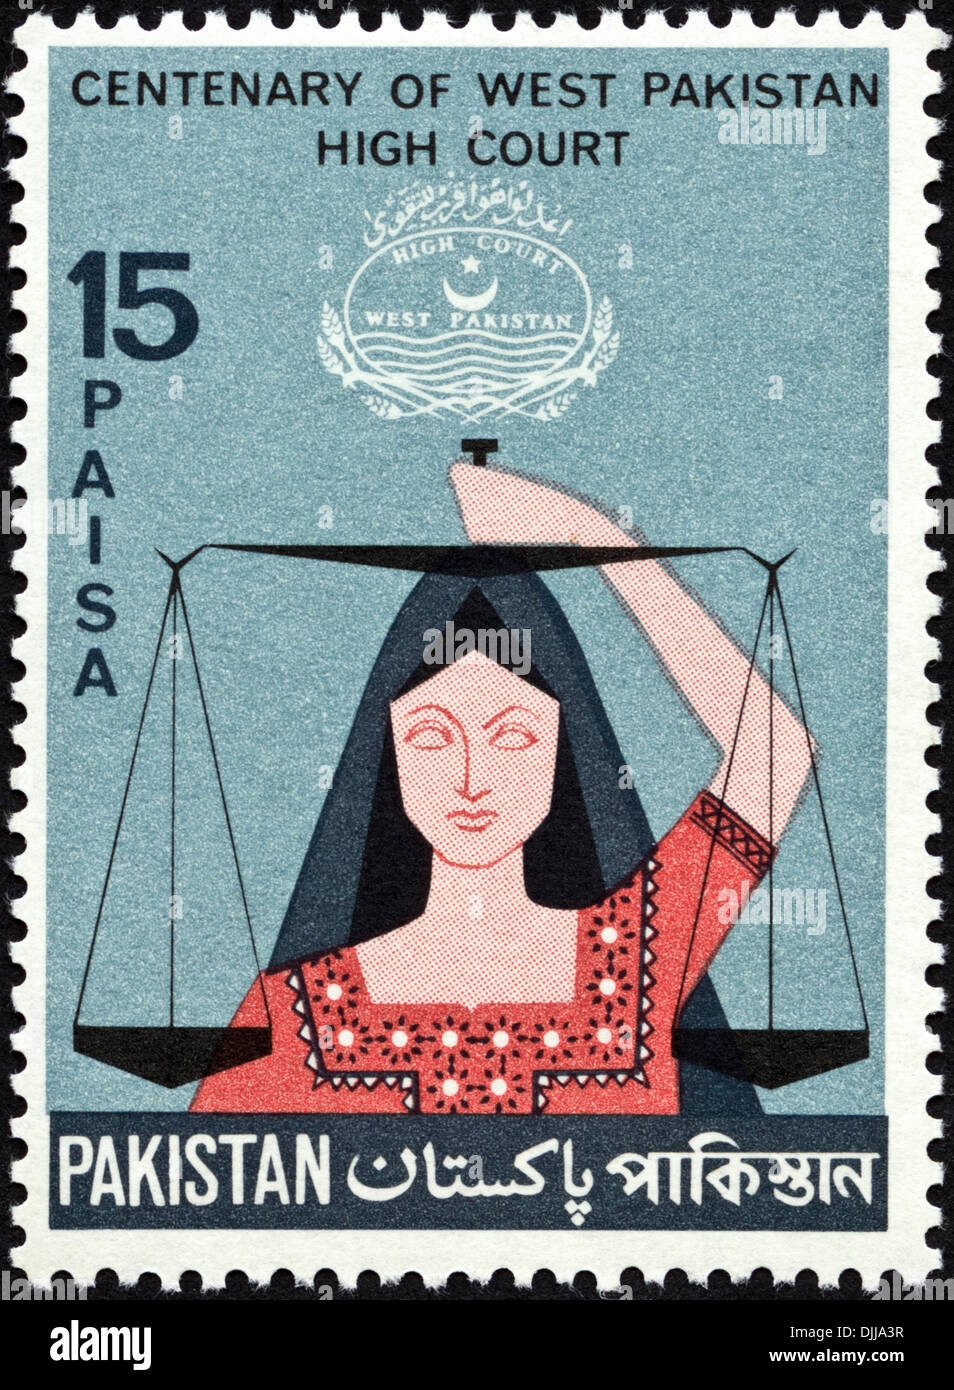 postage stamp Pakistan 15 Paisa featuring Centenary of West Pakistan High Court issued 1967 - Stock Image